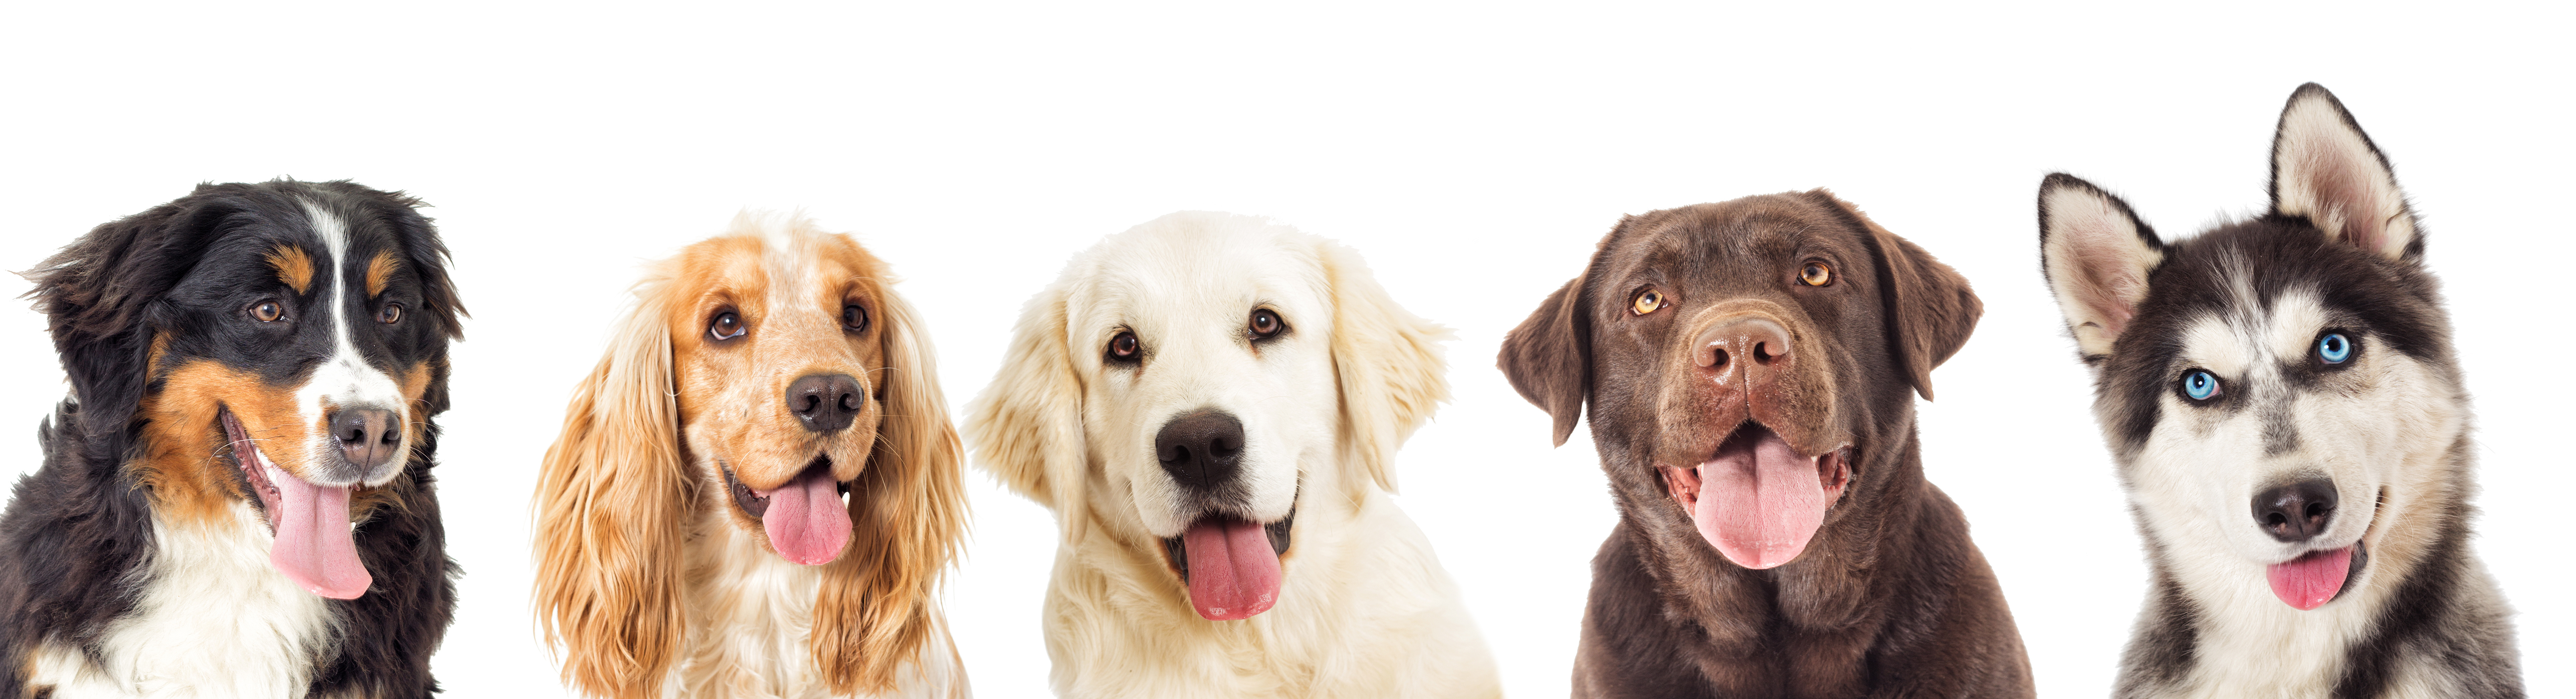 Different dog breeds in a row